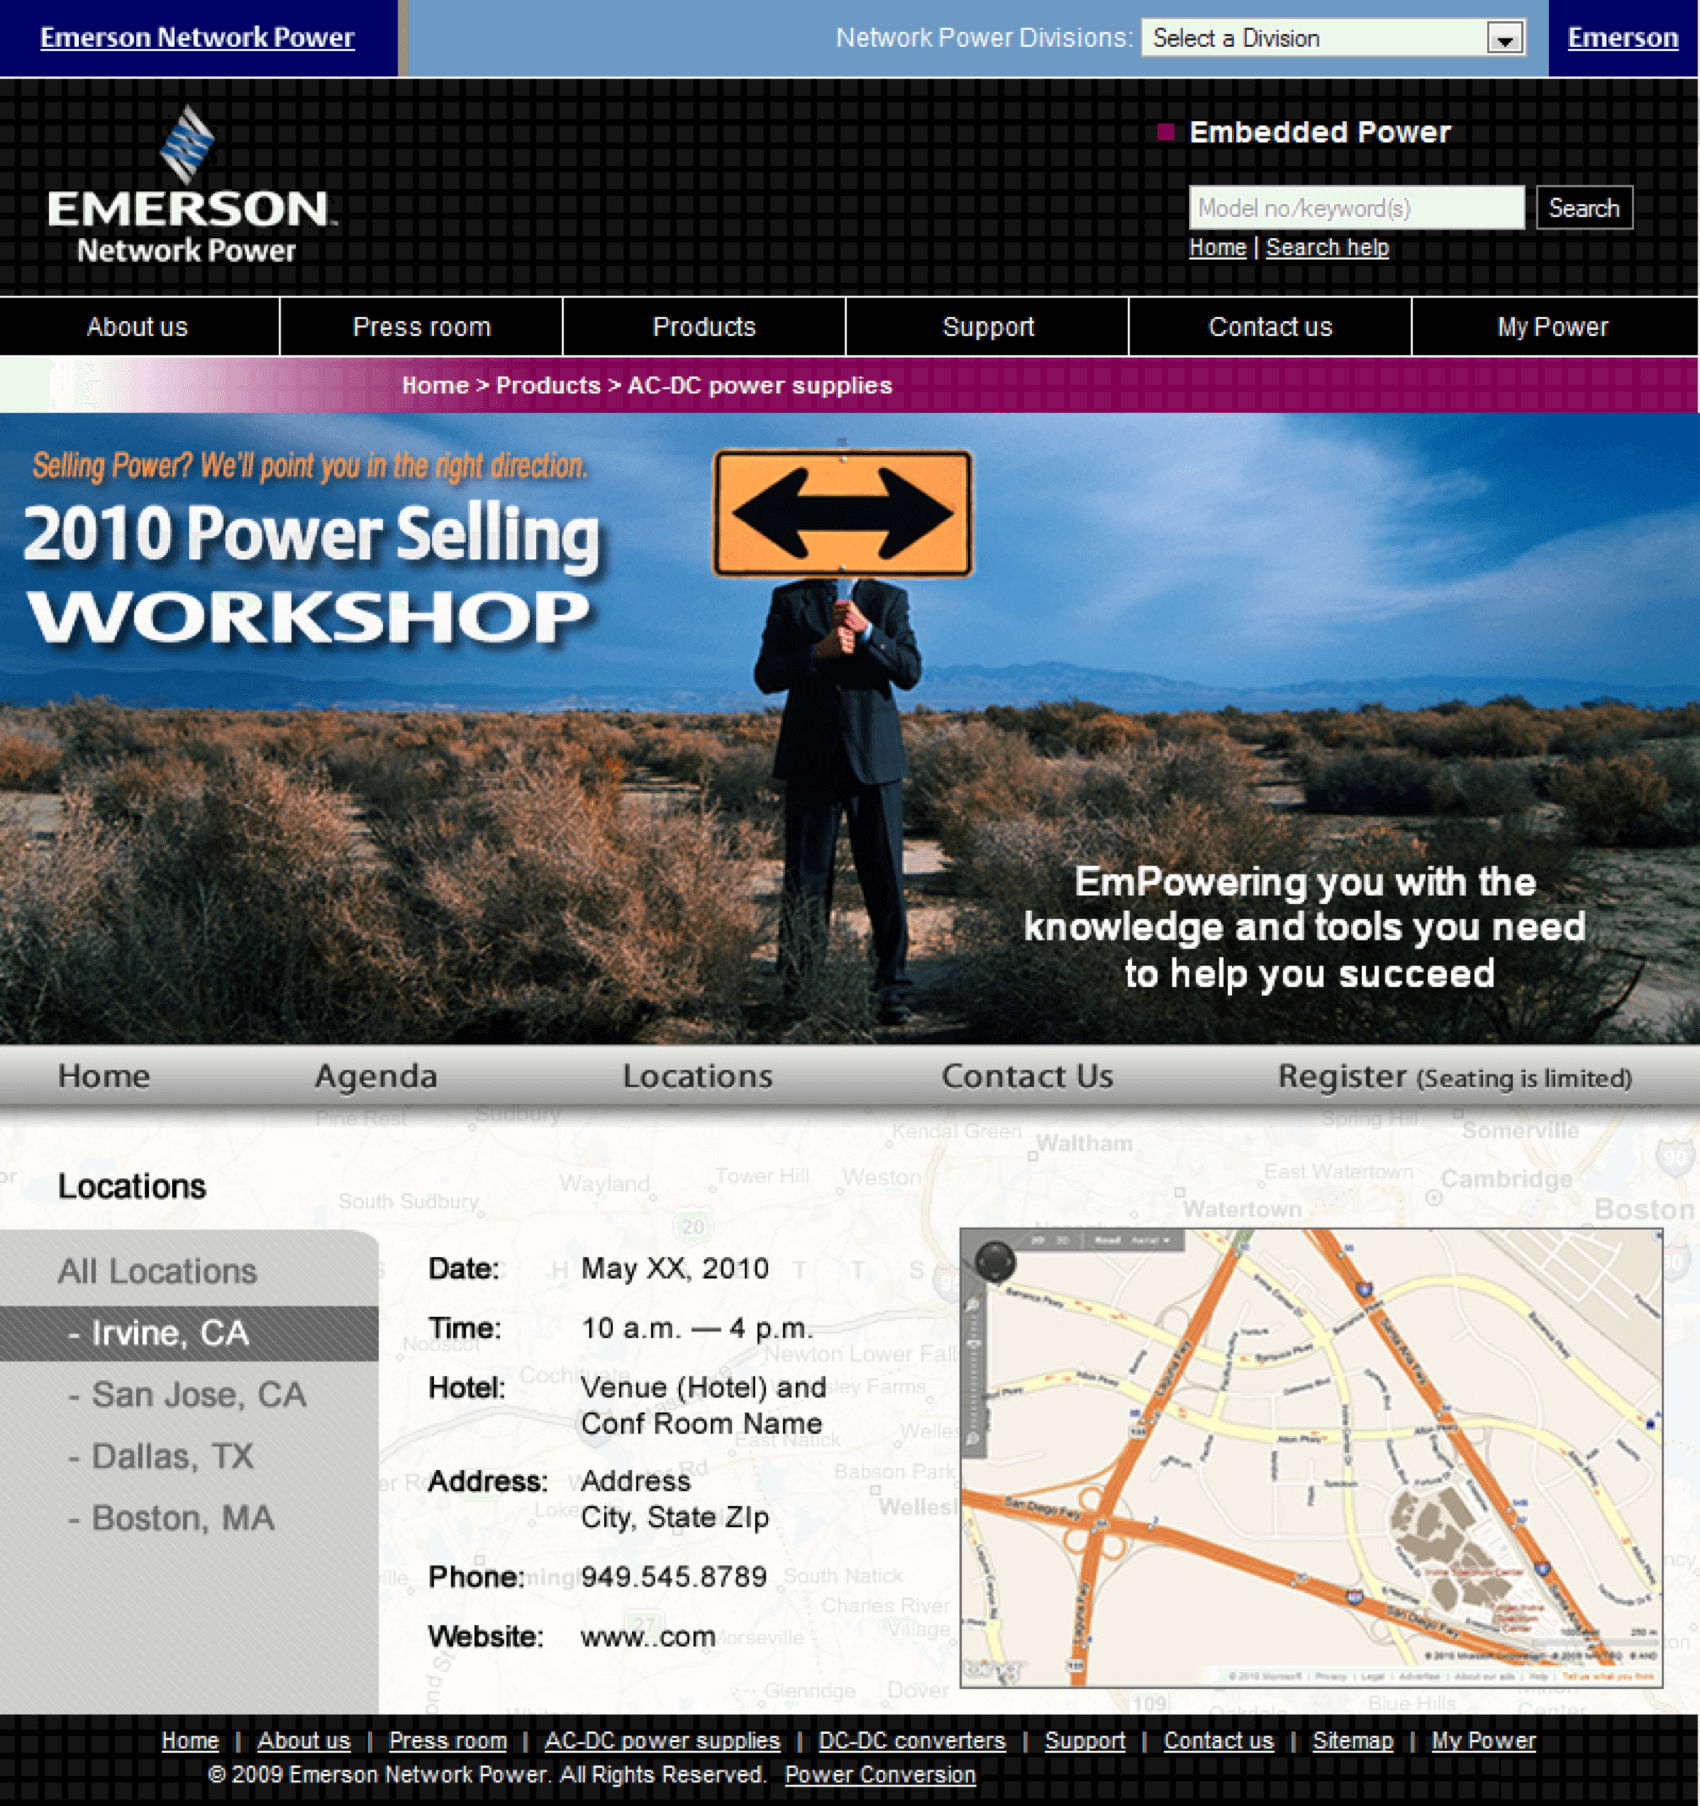 Emerson-AC-DC-Power-Supplies-Conference-Roadshow-Website-Design-Conference-Location